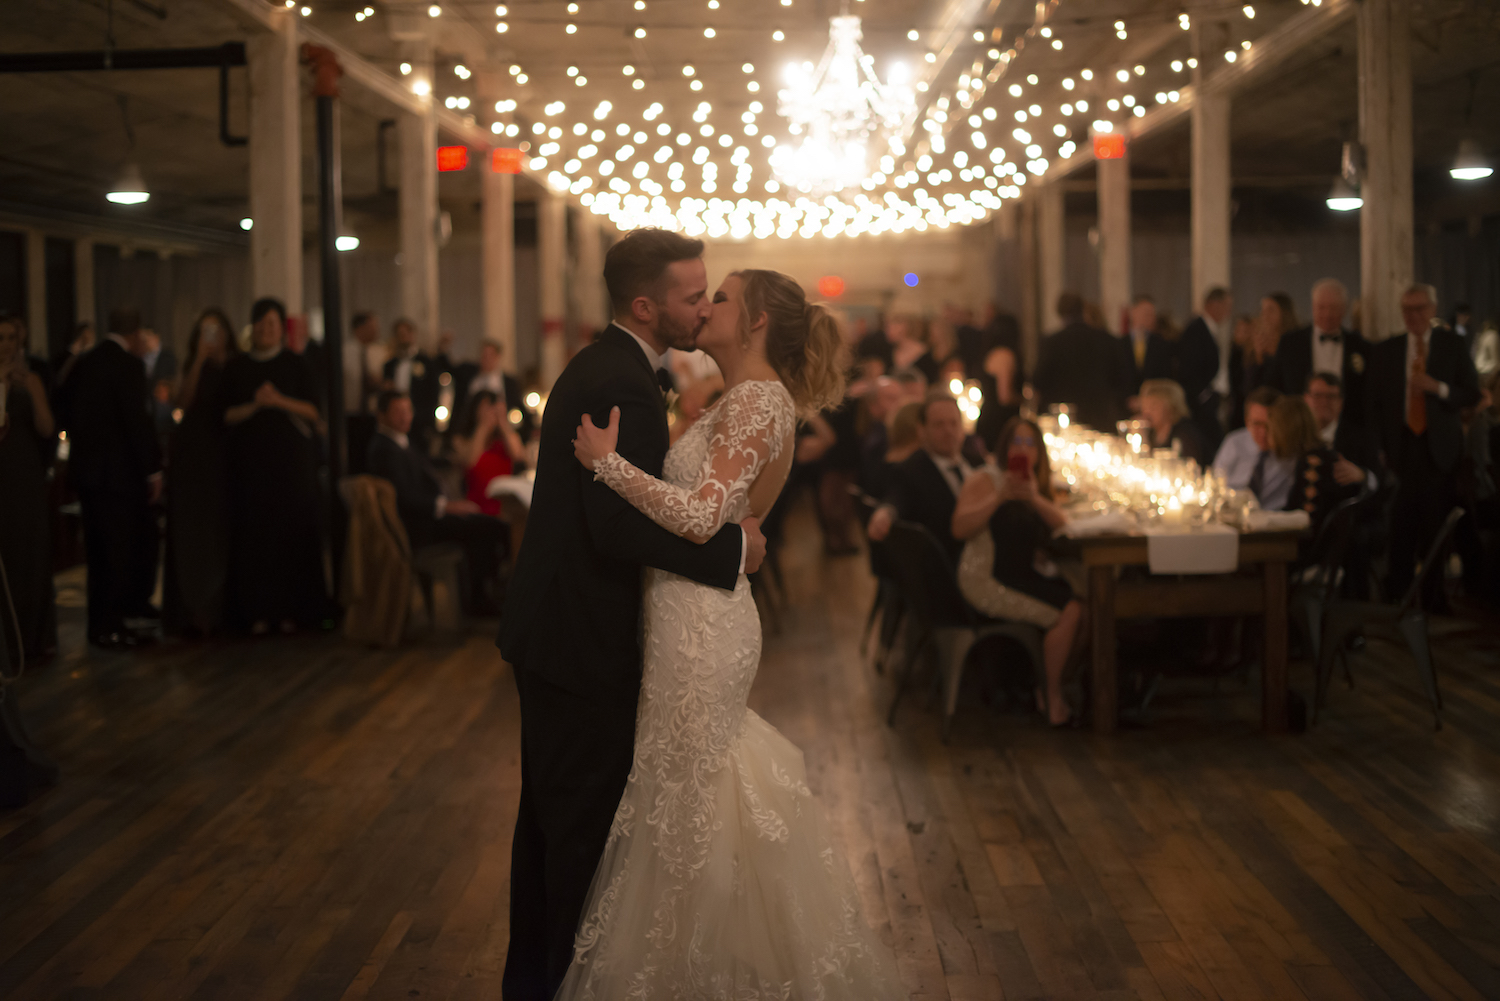 Bride and groom kissing during first dance at rustic Michigan wedding